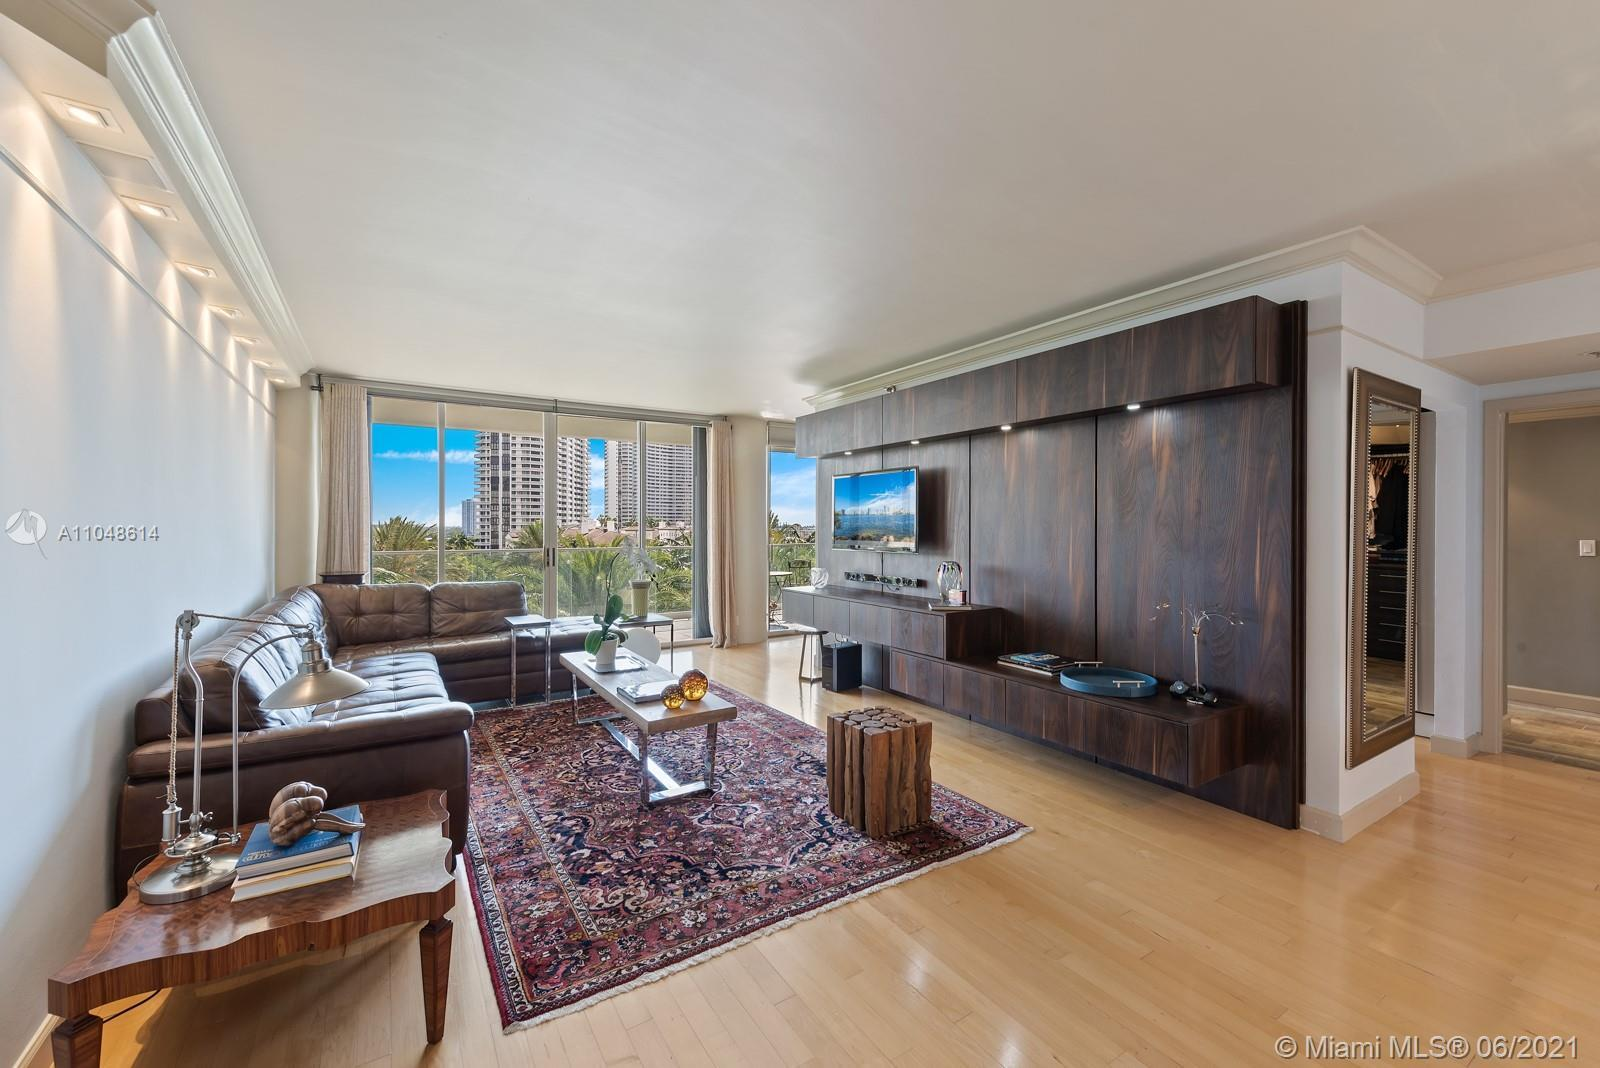 FULLY REMODELED STUNNING WILLIAMS ISLAND 2 BED 2 BATH. SPECTACULAR SPACIOUS CLOSETS. BEAUTIFUL VIEWS